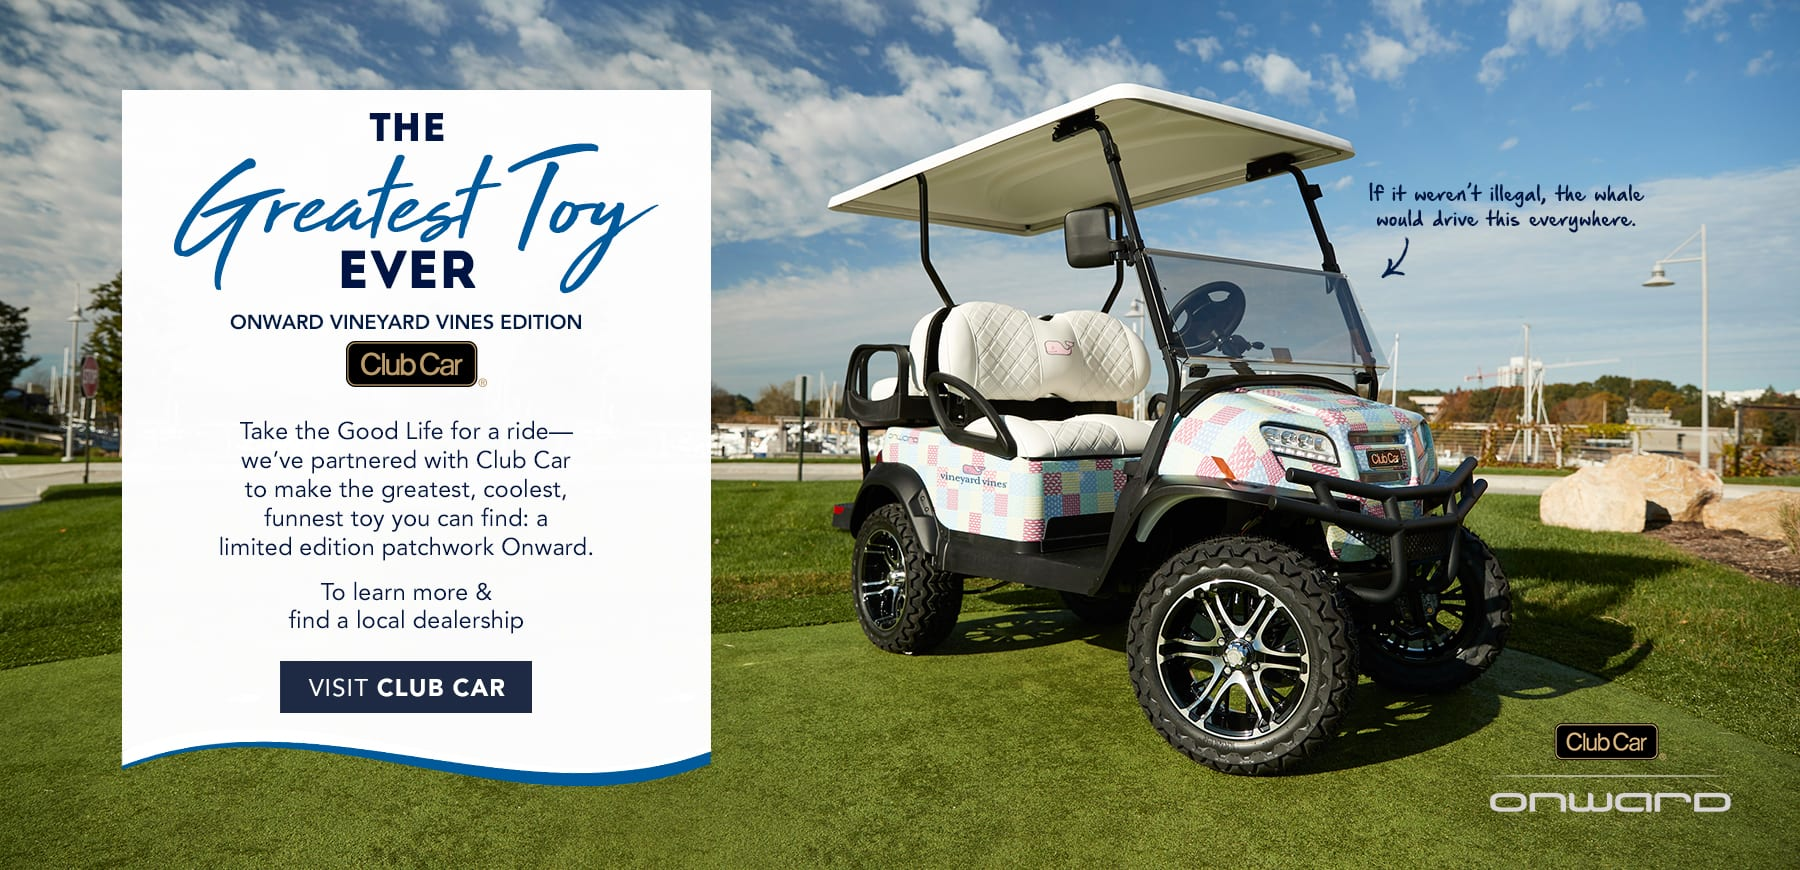 The Greatest Toy Ever. Onward vineyard vines edition. Club Car. Take the Good Life for a ride - we've partnered with Club Car to make this year's greatest gift: a limited edition patchwork Onward. To learn more & final a local dealership visit Club Car by clicking here.